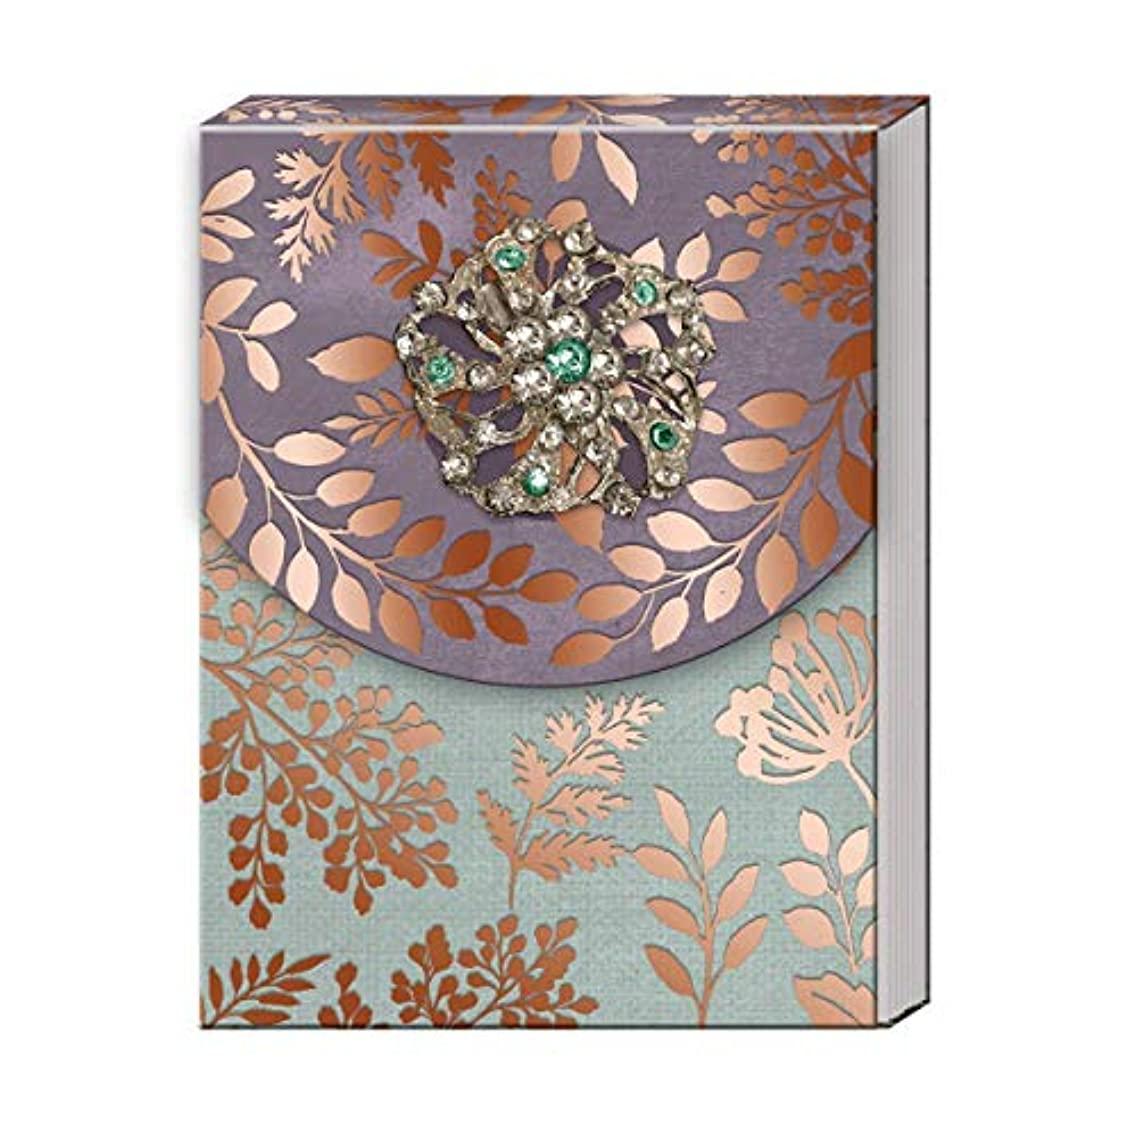 Punch Studio Brooch Mini Note Pad with Pattern Copper Leaves (43833)